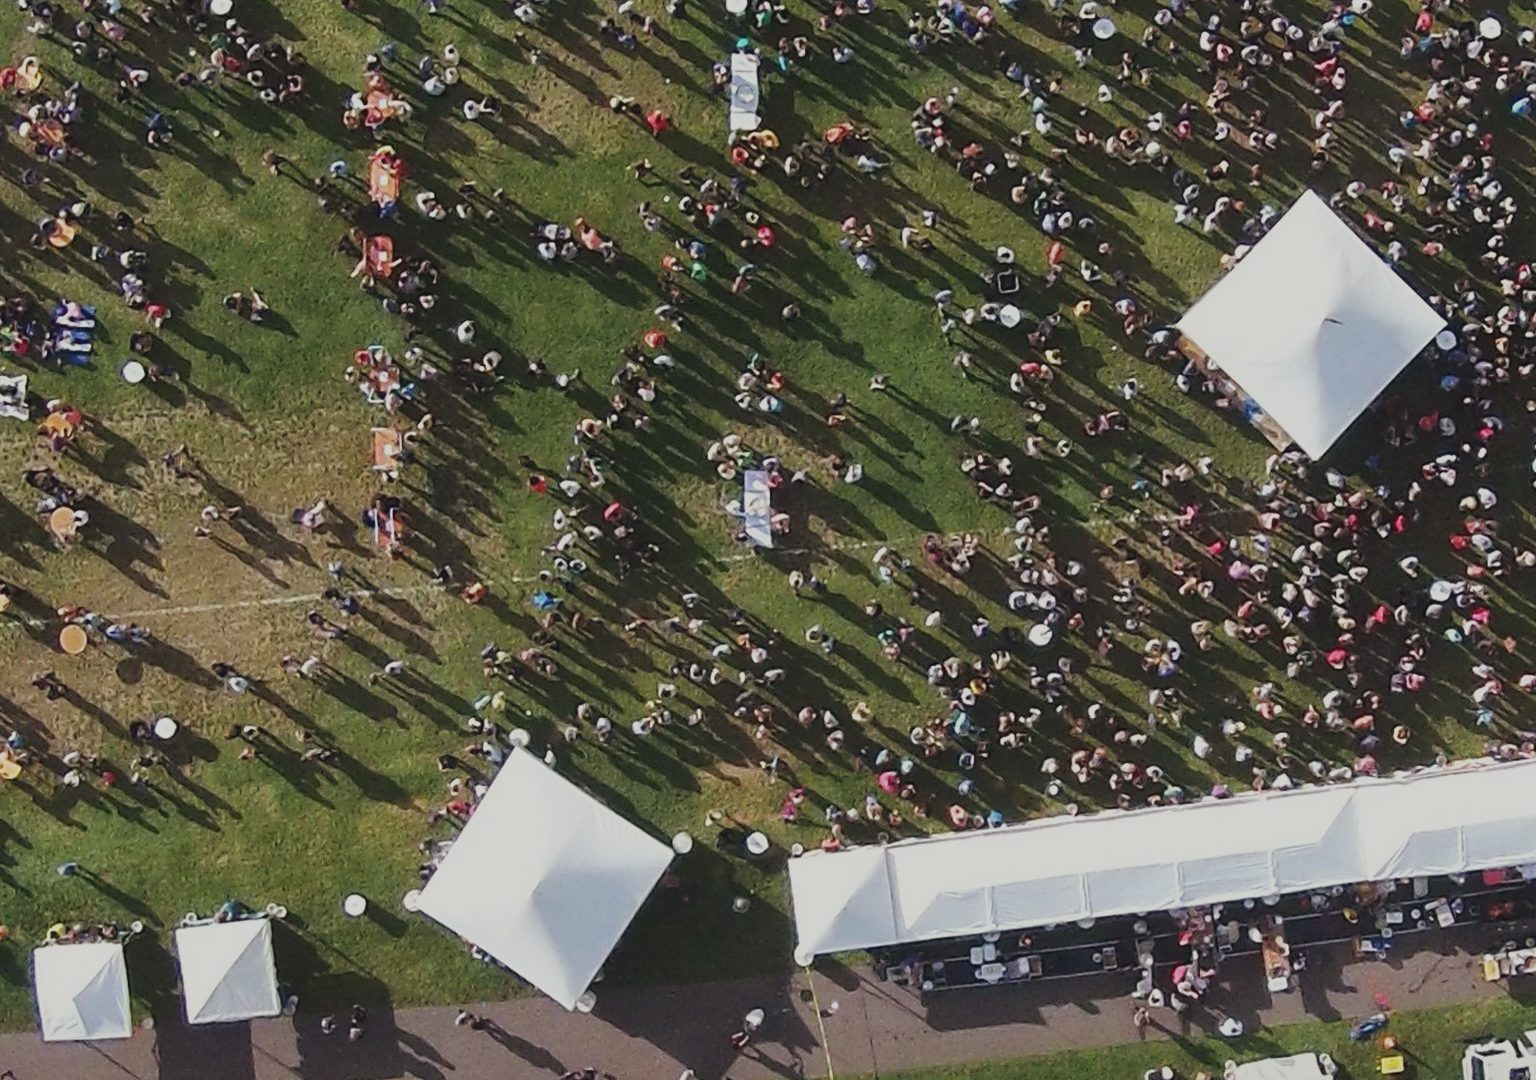 Aerial view of crowds and food tents in grassy area at Yum Yum Fest